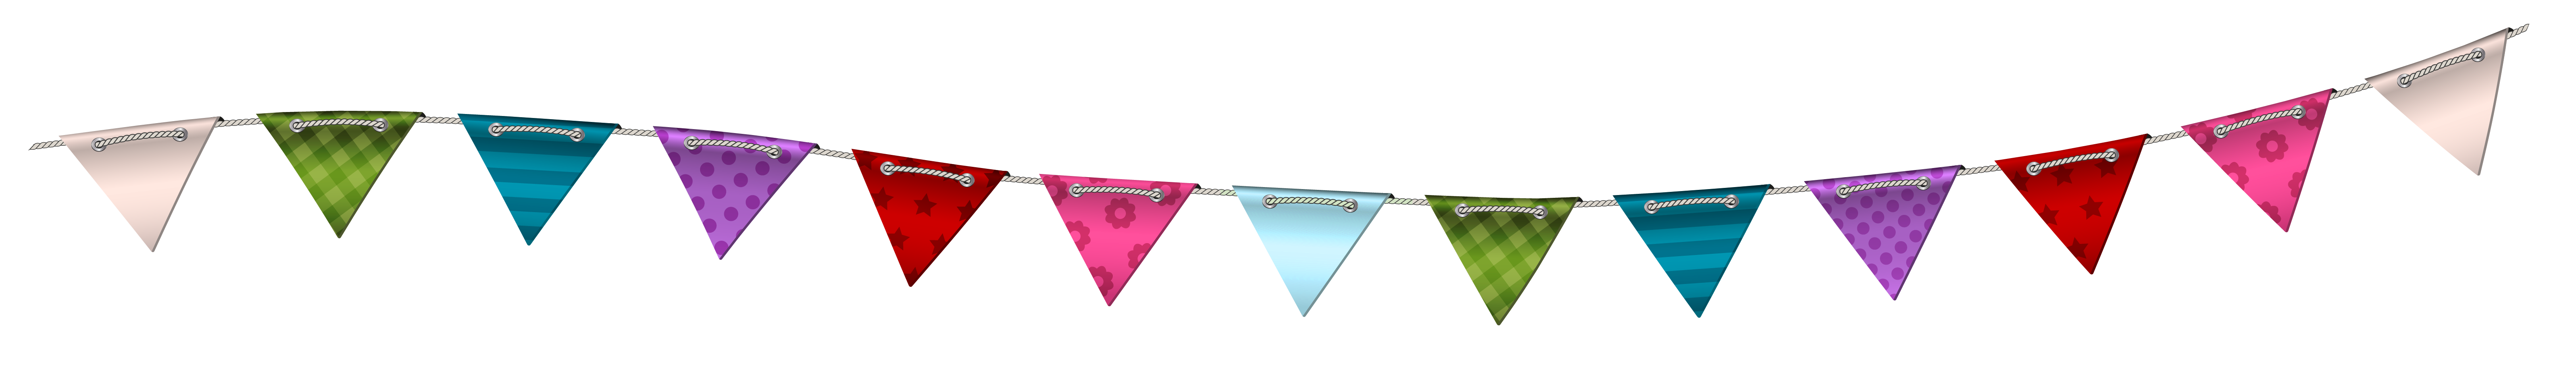 Png party. Transparent streamer clip art